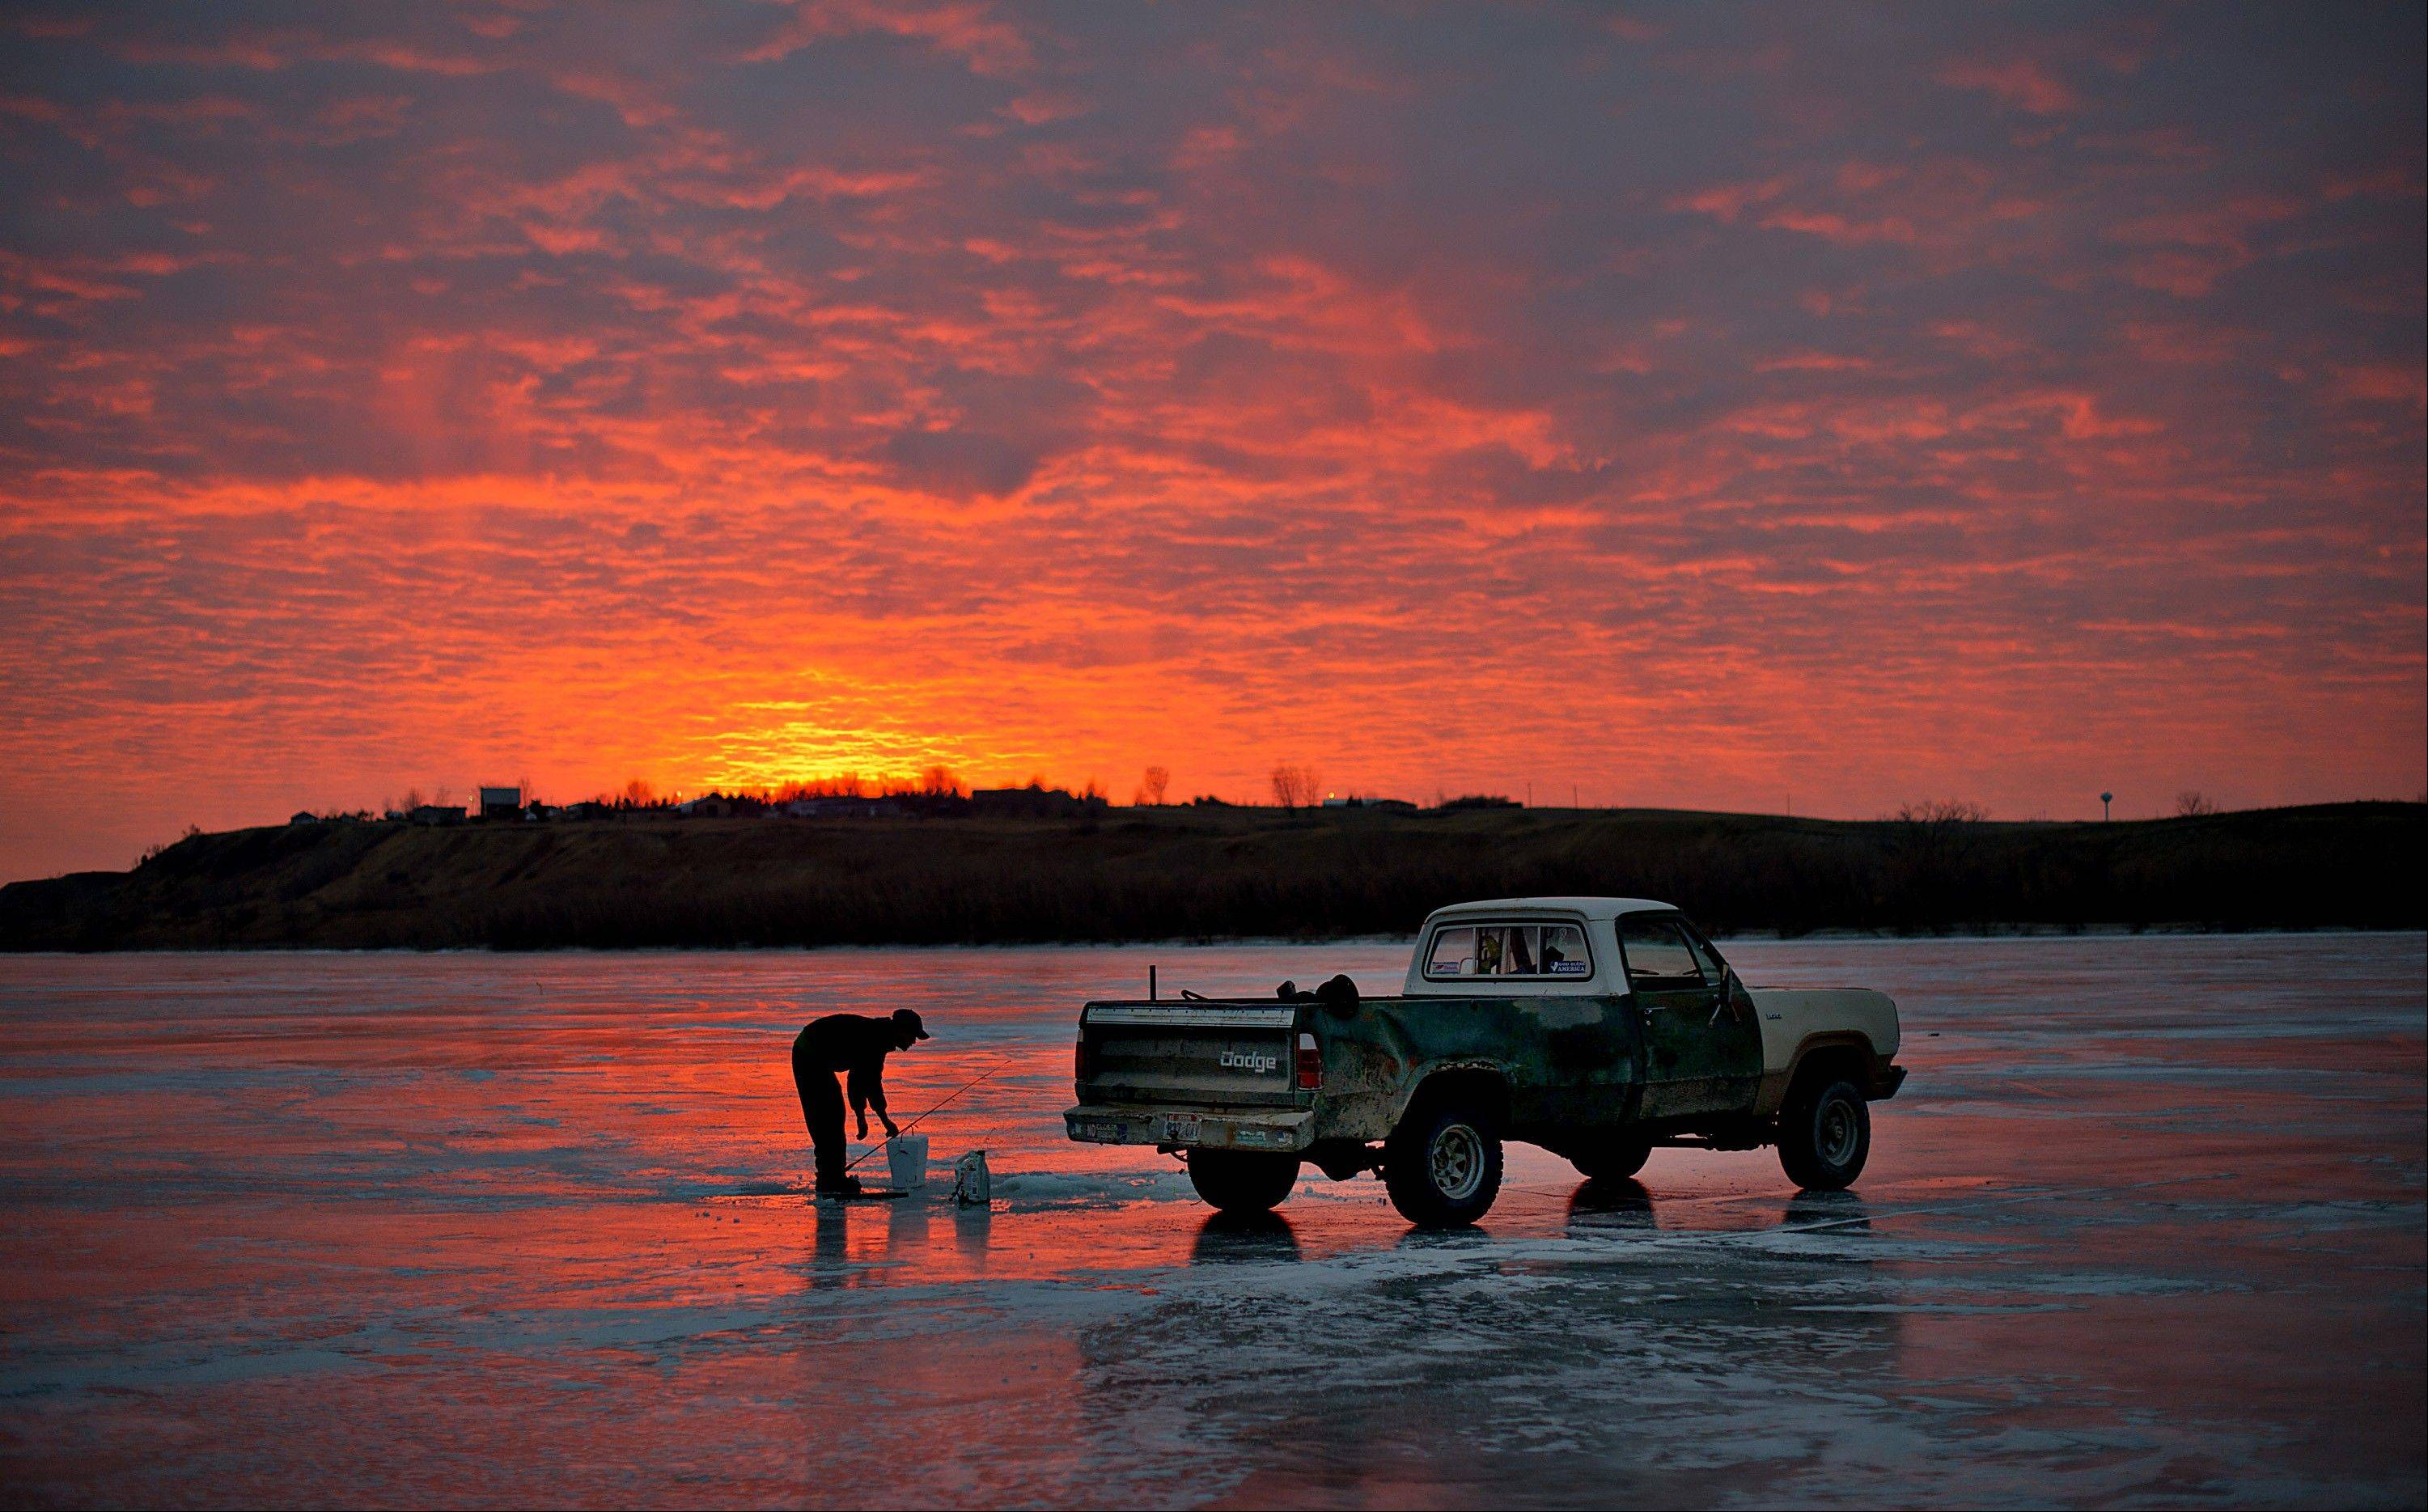 Joe Jessop, a truck driver from Orderville, Utah, sets his pole as while fishing on the frozen Missouri River in Williston, North Dakota, U.S., on Sunday, Feb. 12, 2012. North Dakota will hold its Republican presidential caucus on March 6.